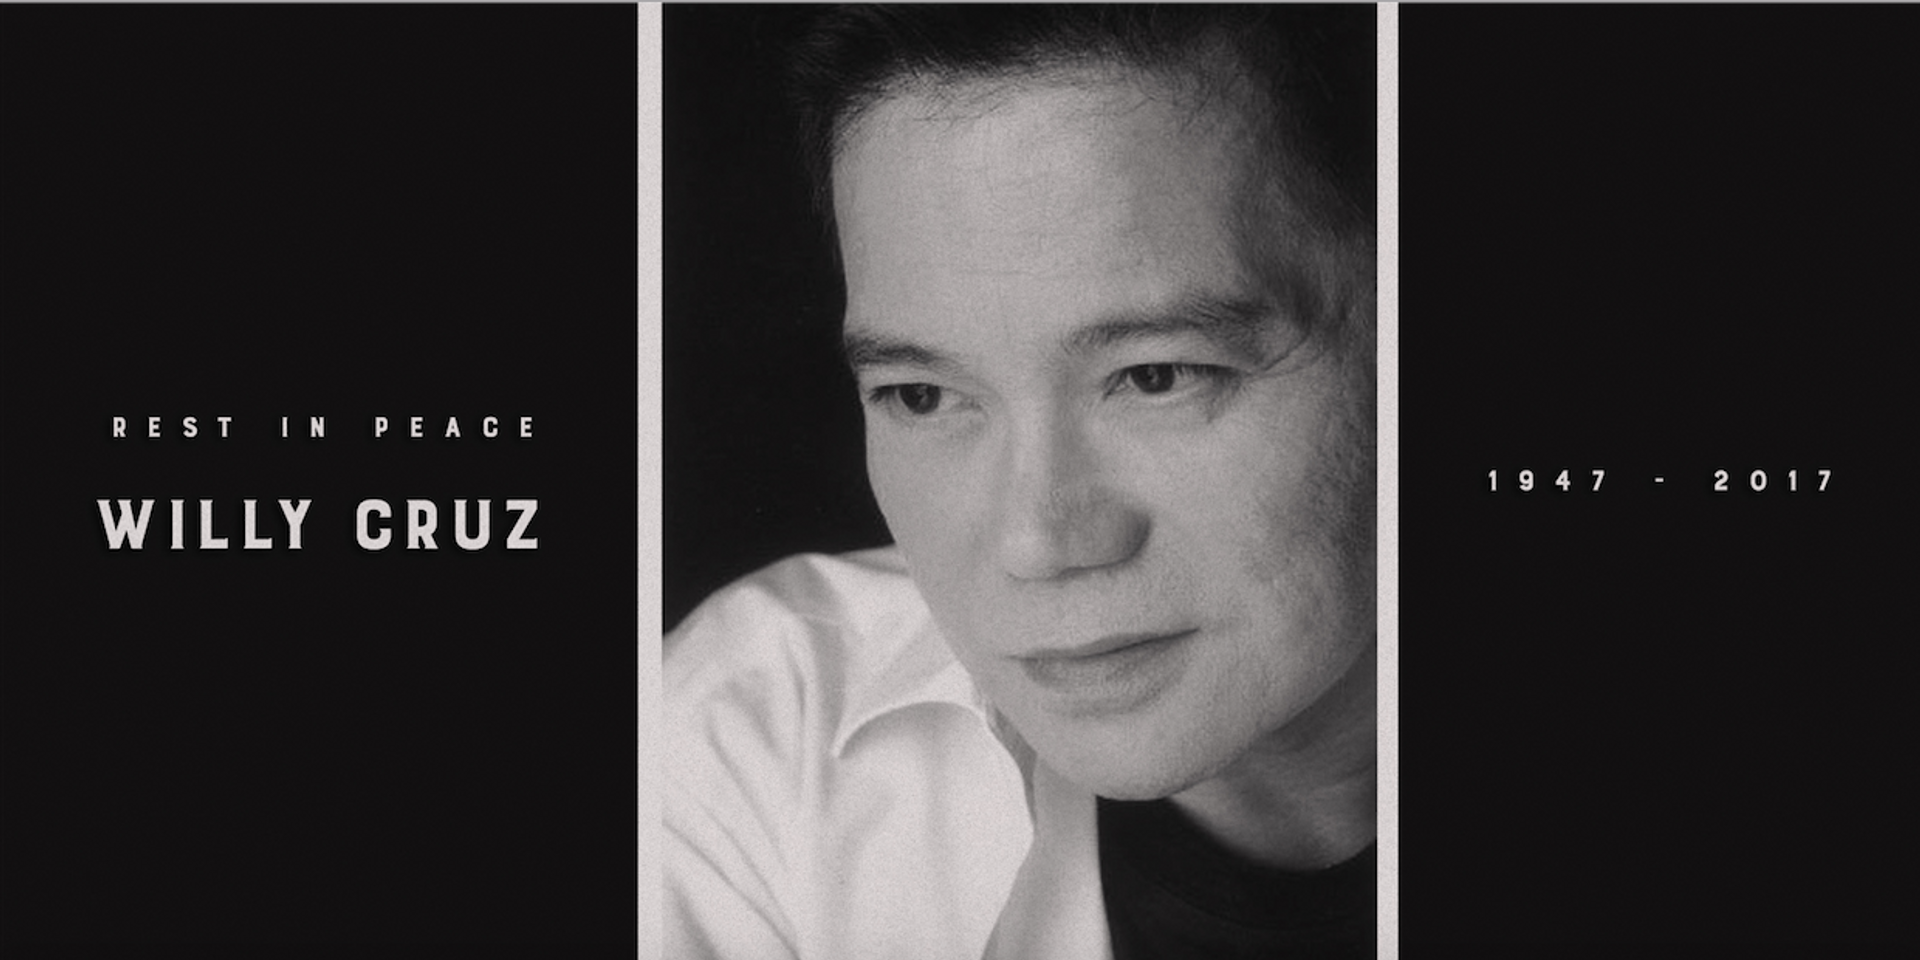 Renowned Filipino songwriter and film score composer Willy Cruz passes away at 70